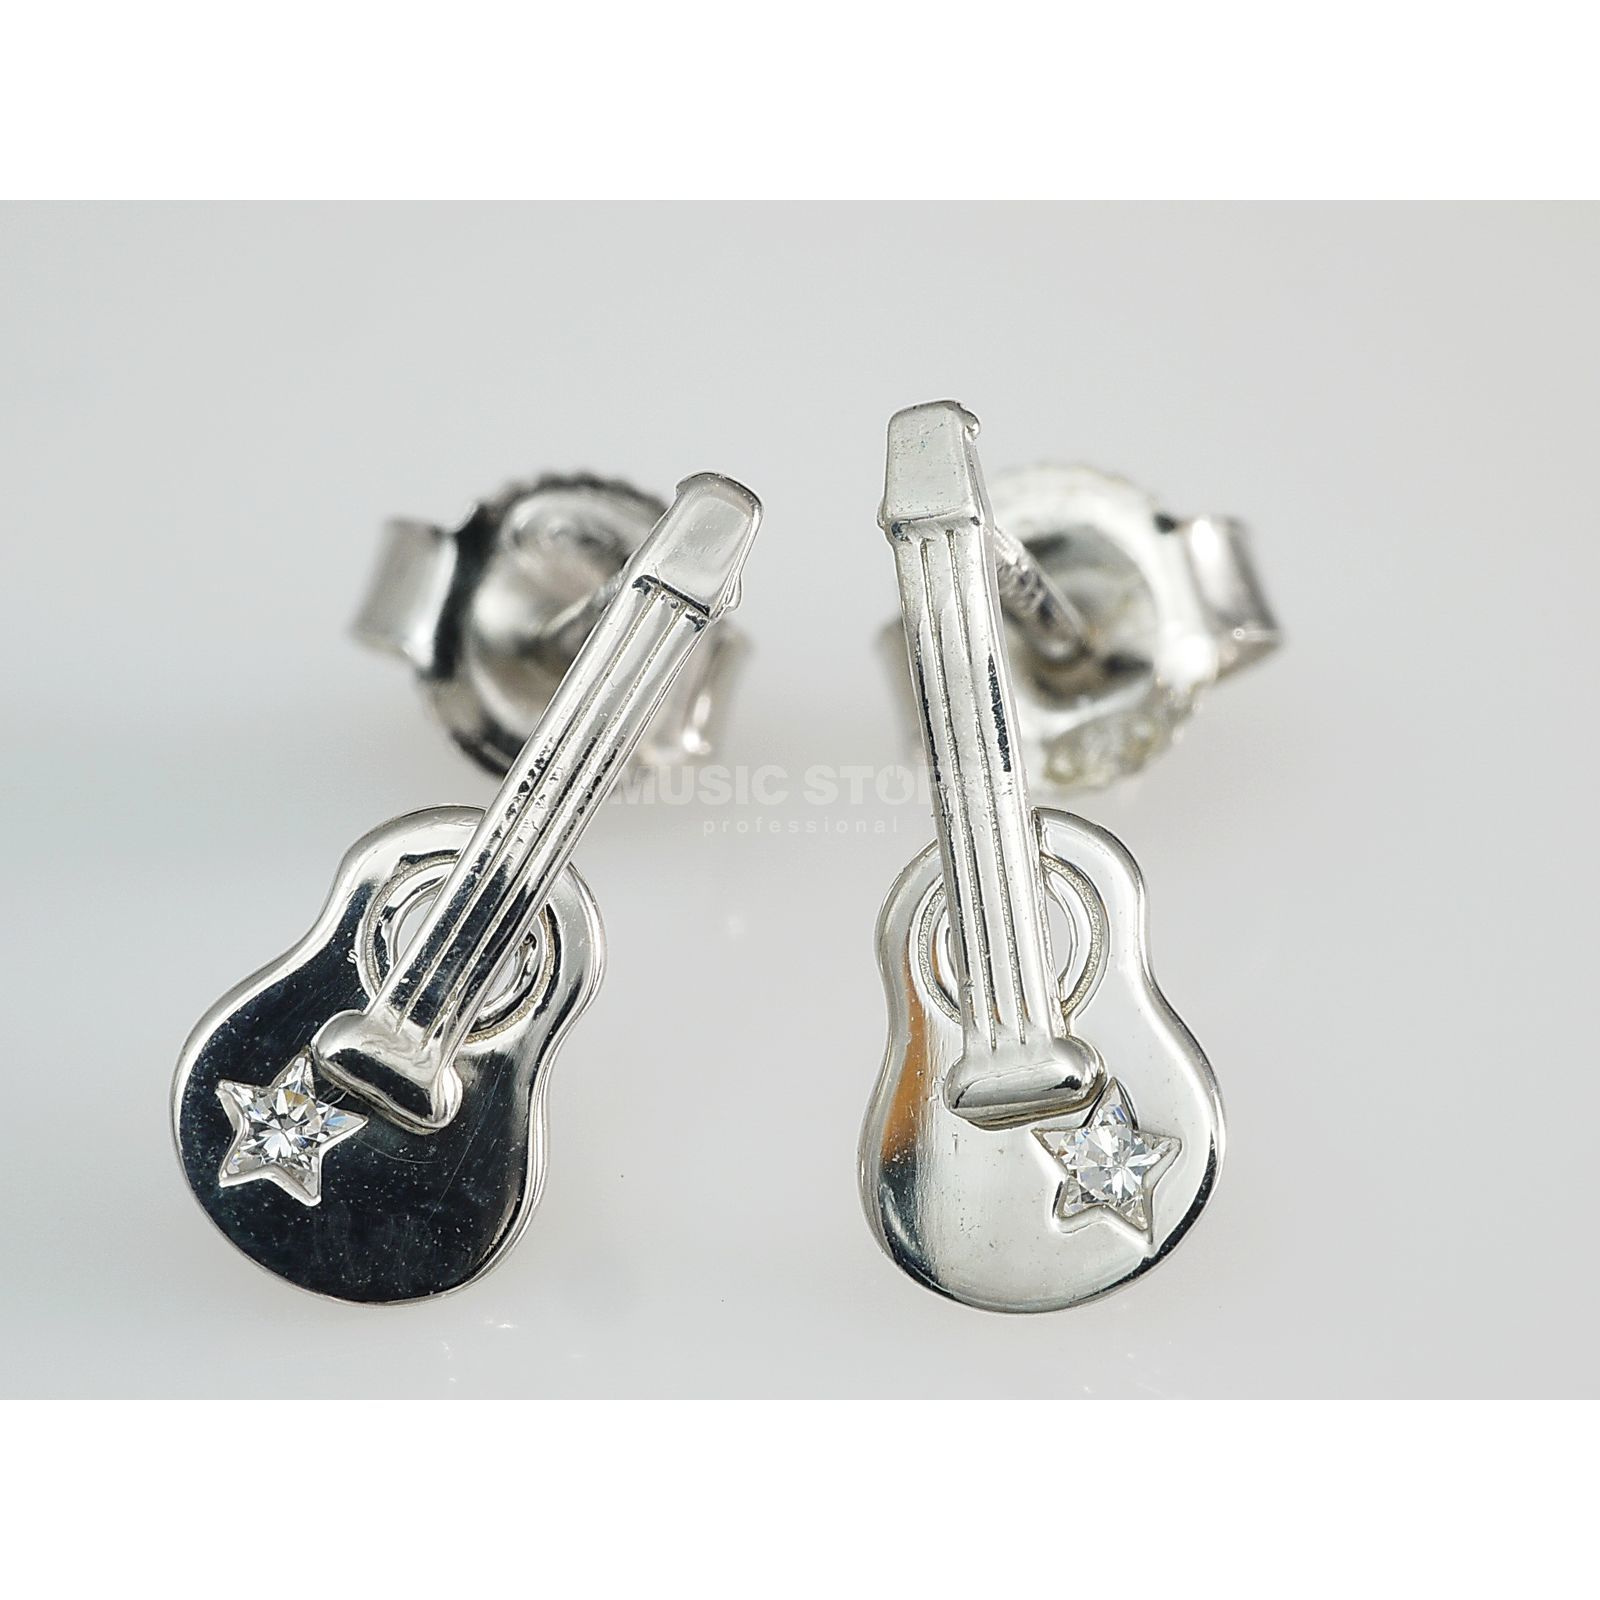 Rockys Earrings Western Guitar Silver 925, zirconia Produktbillede